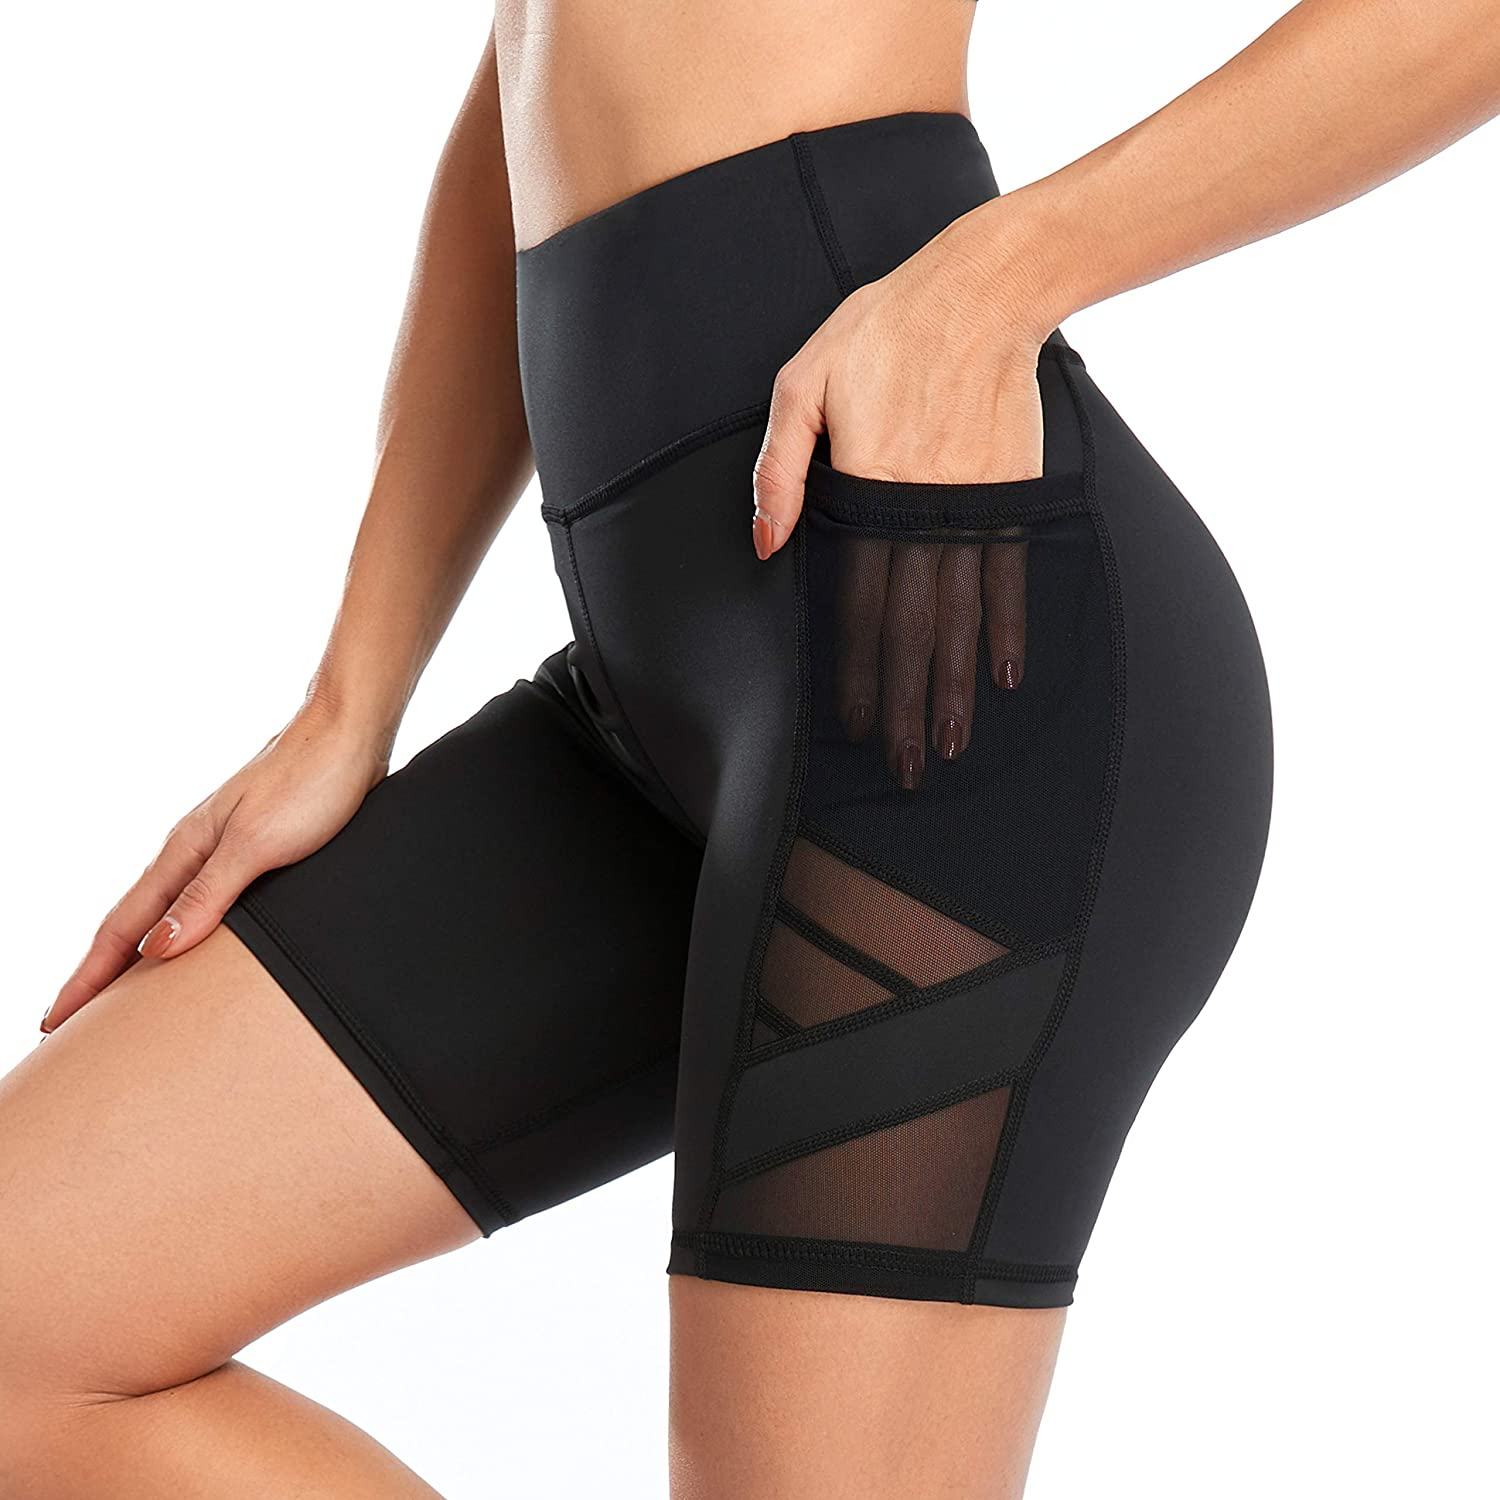 WE CUFFLLE Women's Mesh High Waist Pants Yoga Challenge the lowest price of Japan Popular brand Leggings with Pock